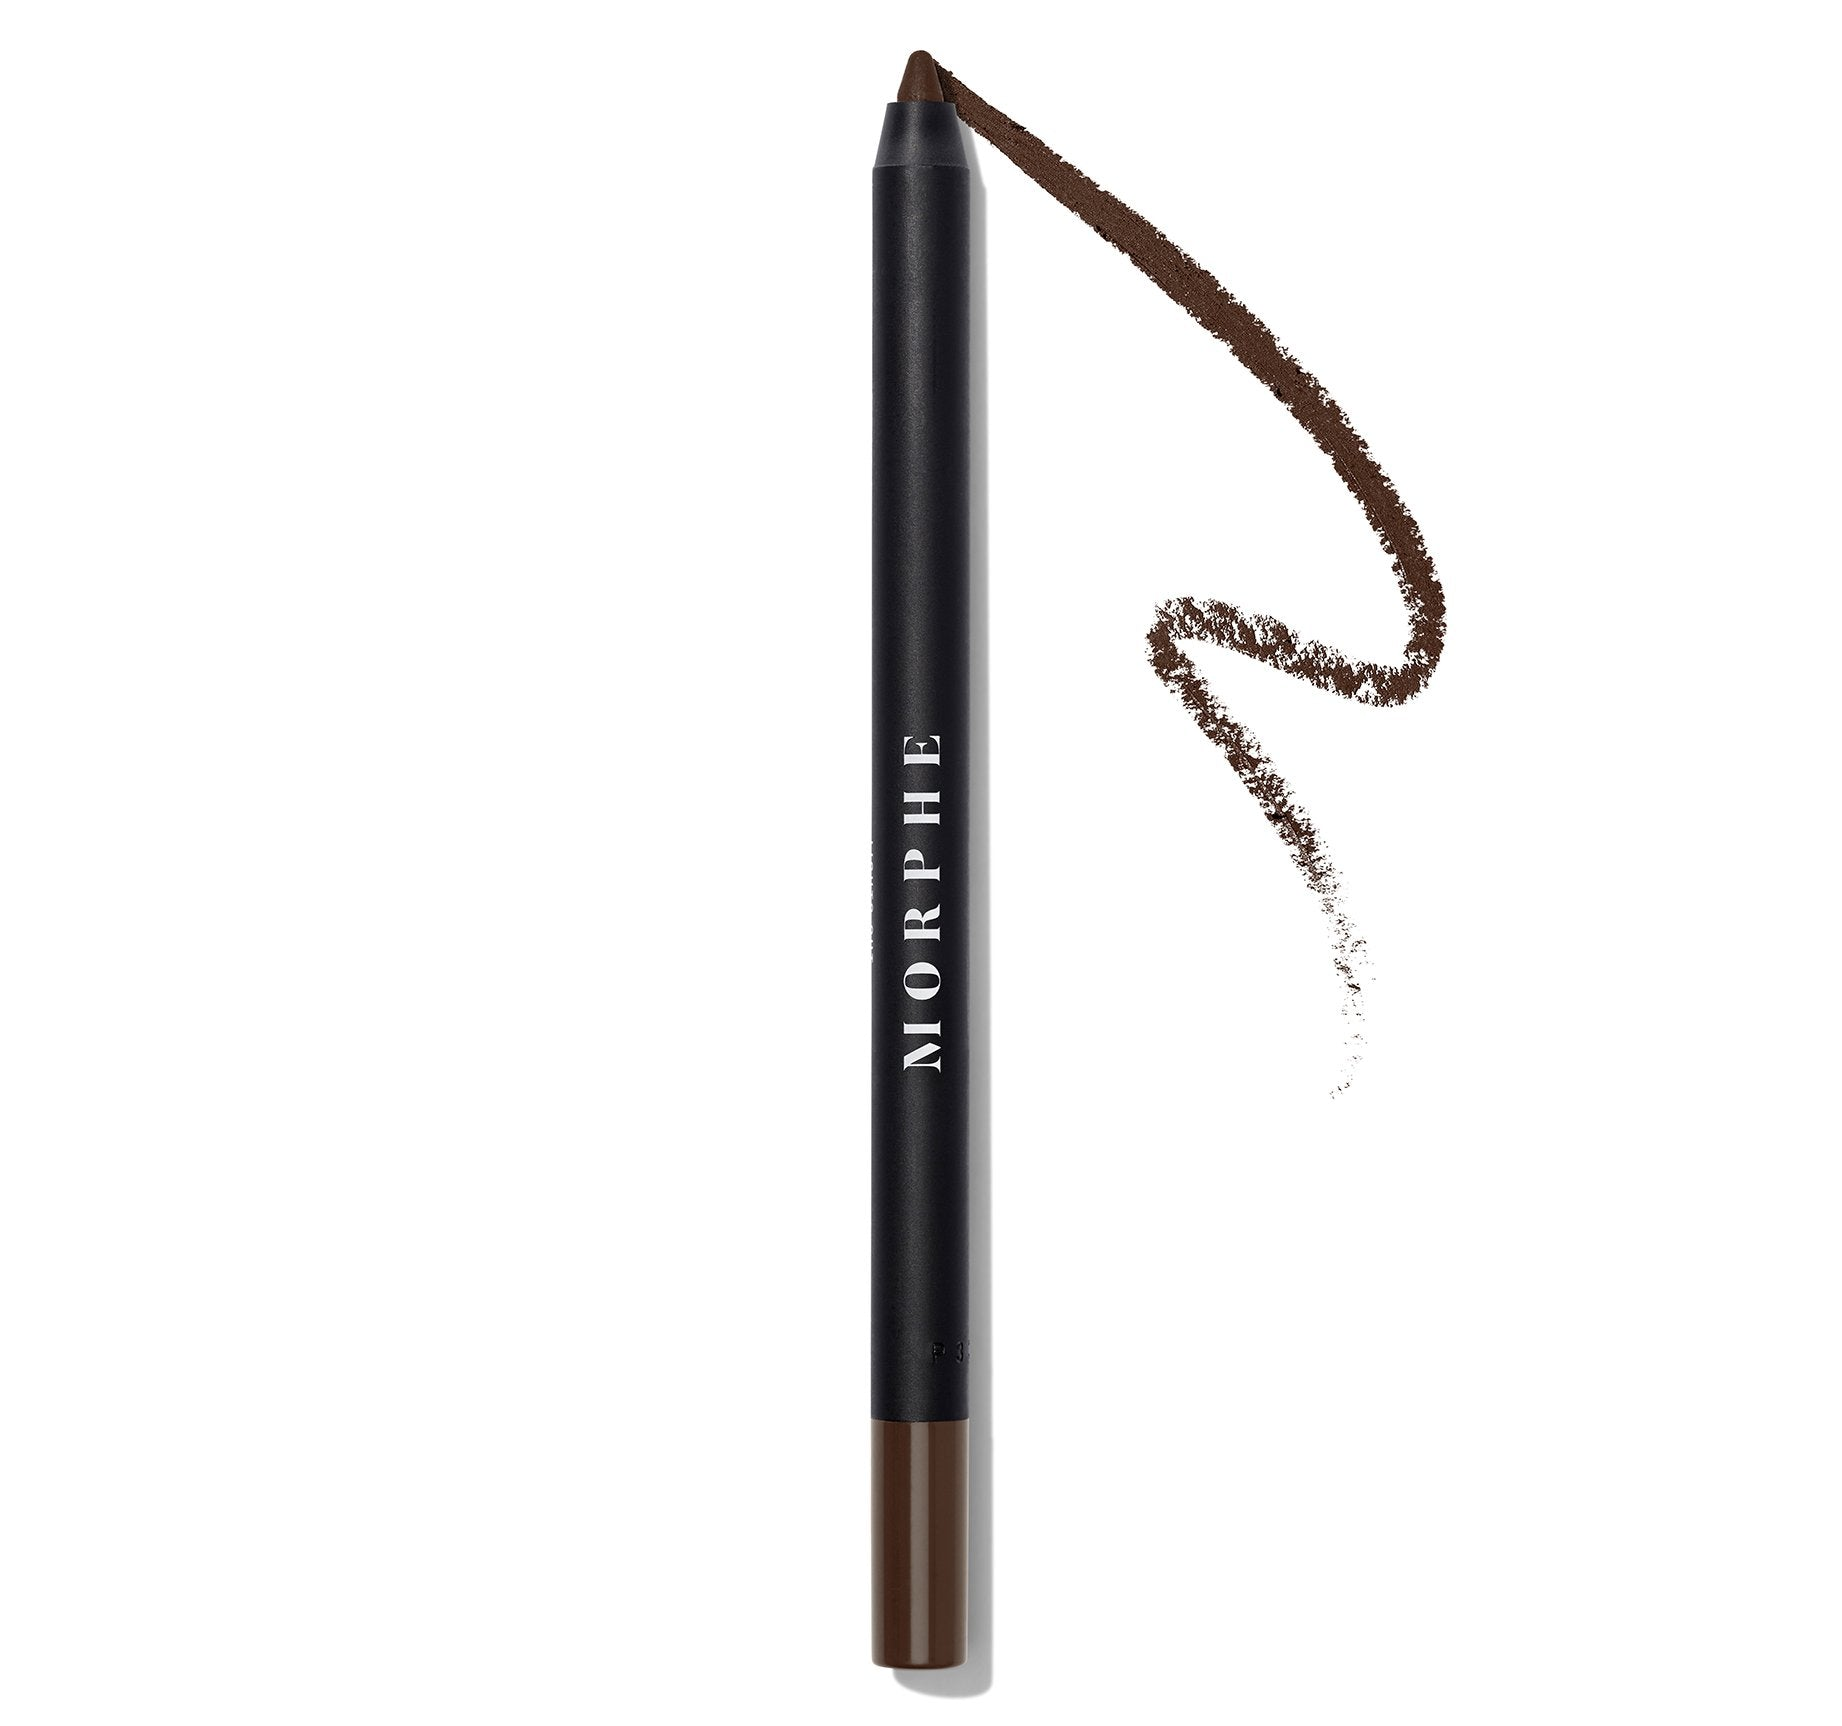 EYELINER PENCIL - DIMMER, view larger image